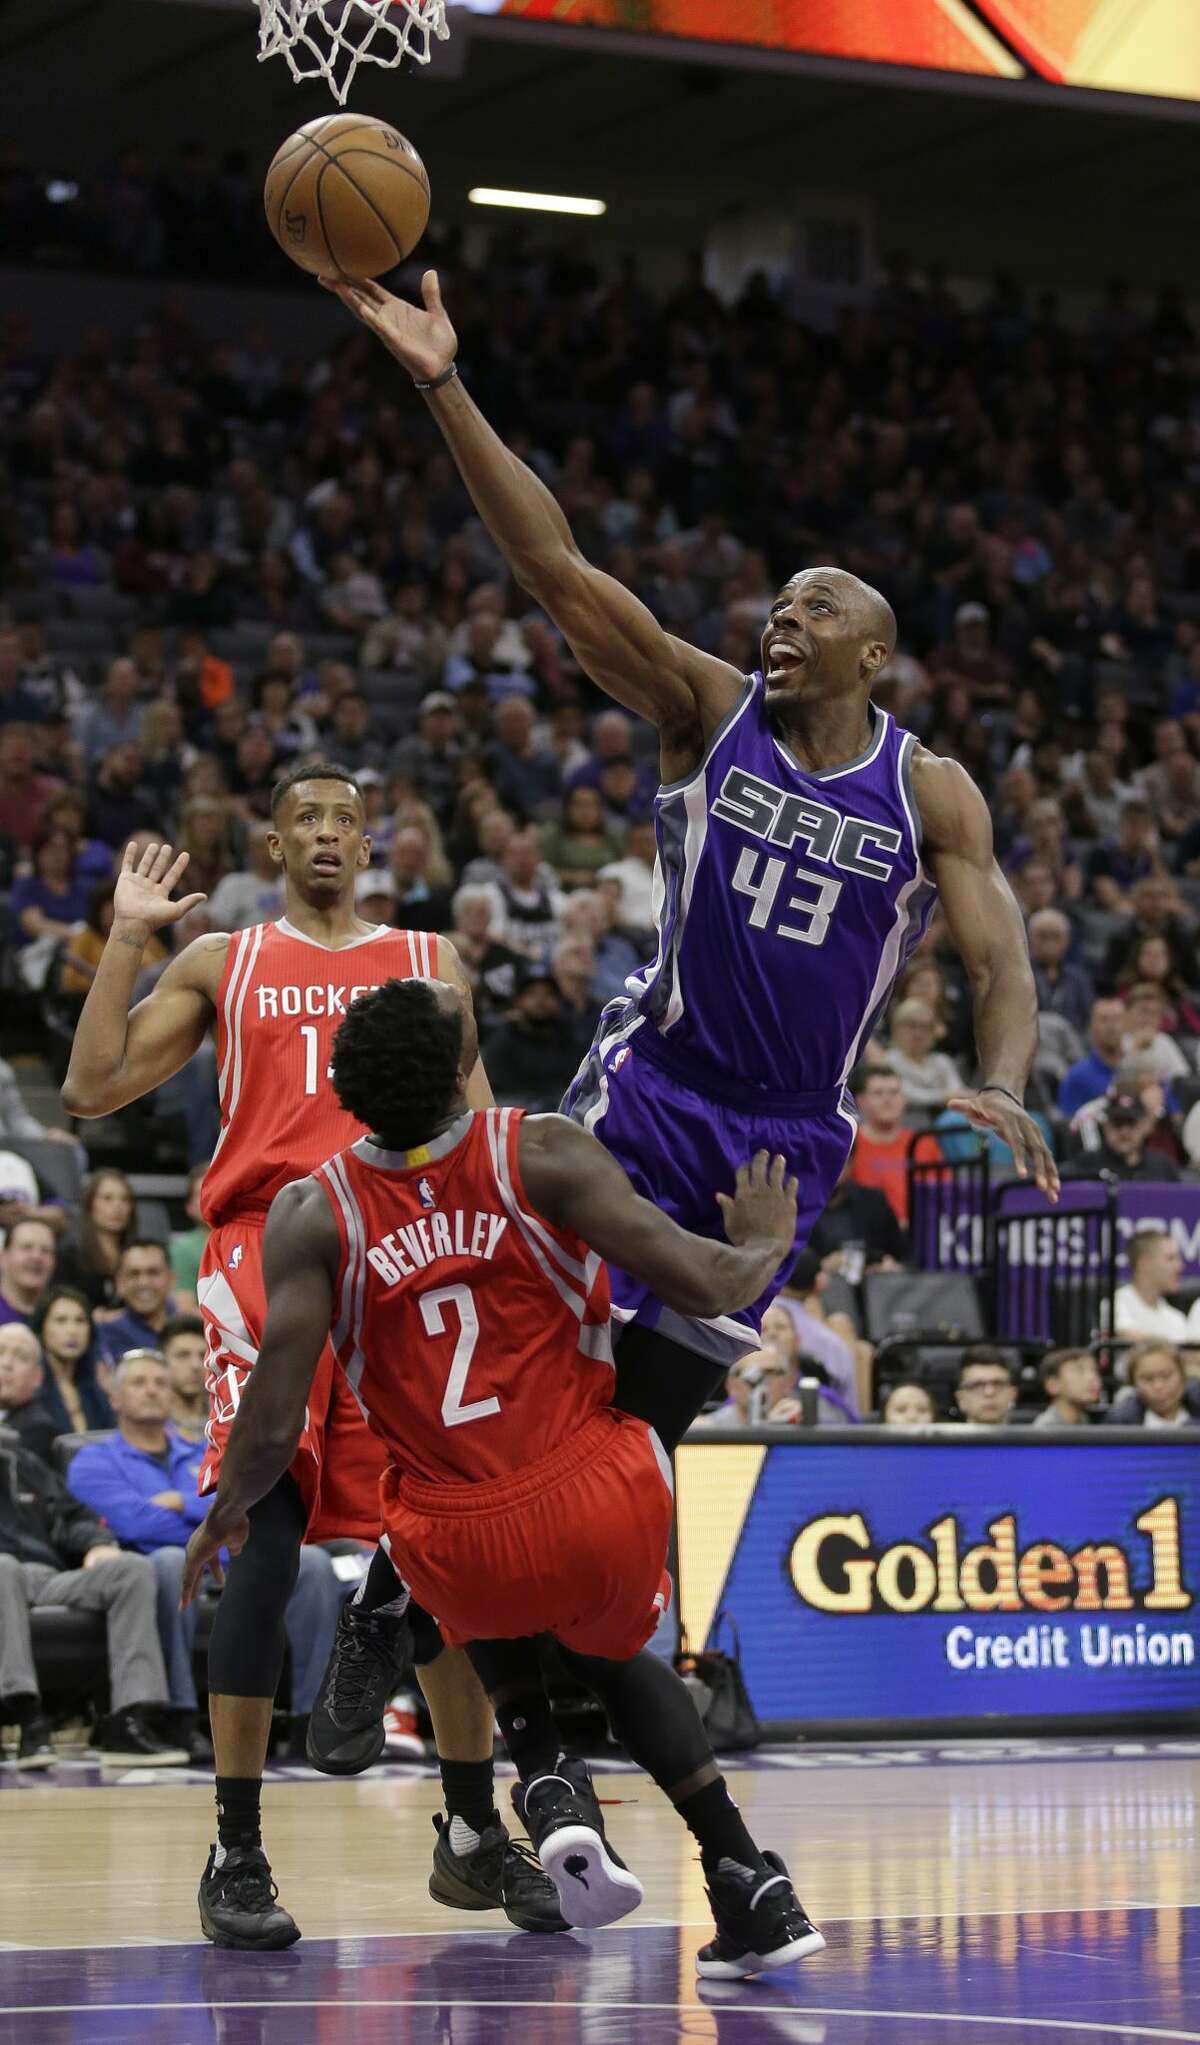 Sacramento Kings forward Anthony Tolliver, right, is fouled by Houston Rockets guard Patrick Beverley, left, during the second half of an NBA basketball game Sunday, April 9, 2017, in Sacramento, Calif. The Rockets won 135-128. (AP Photo/Rich Pedroncelli)